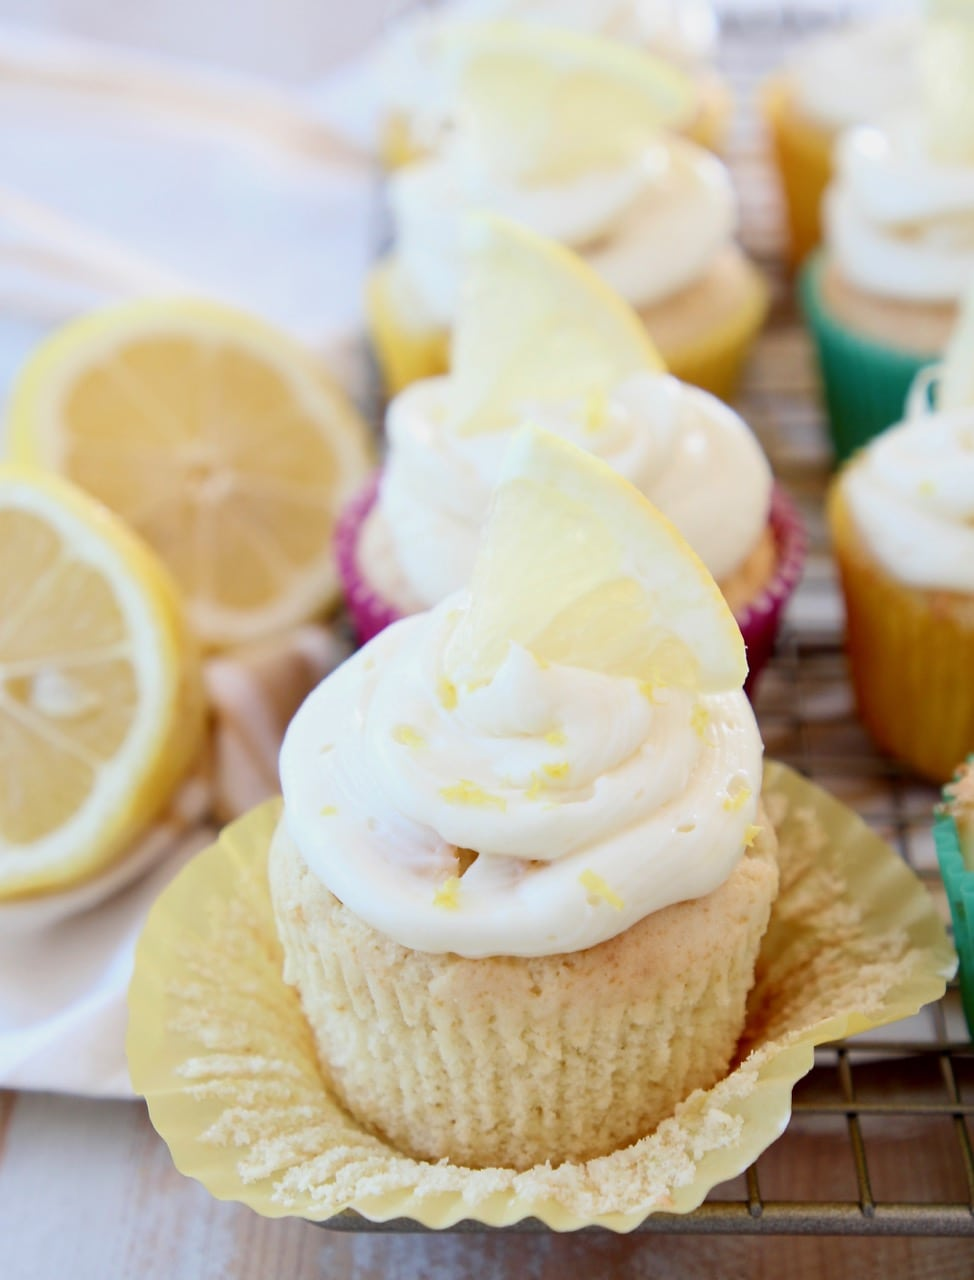 Lemon cupcake with wrapper unfolded, topped with lemon cream cheese frosting and lemon wedge